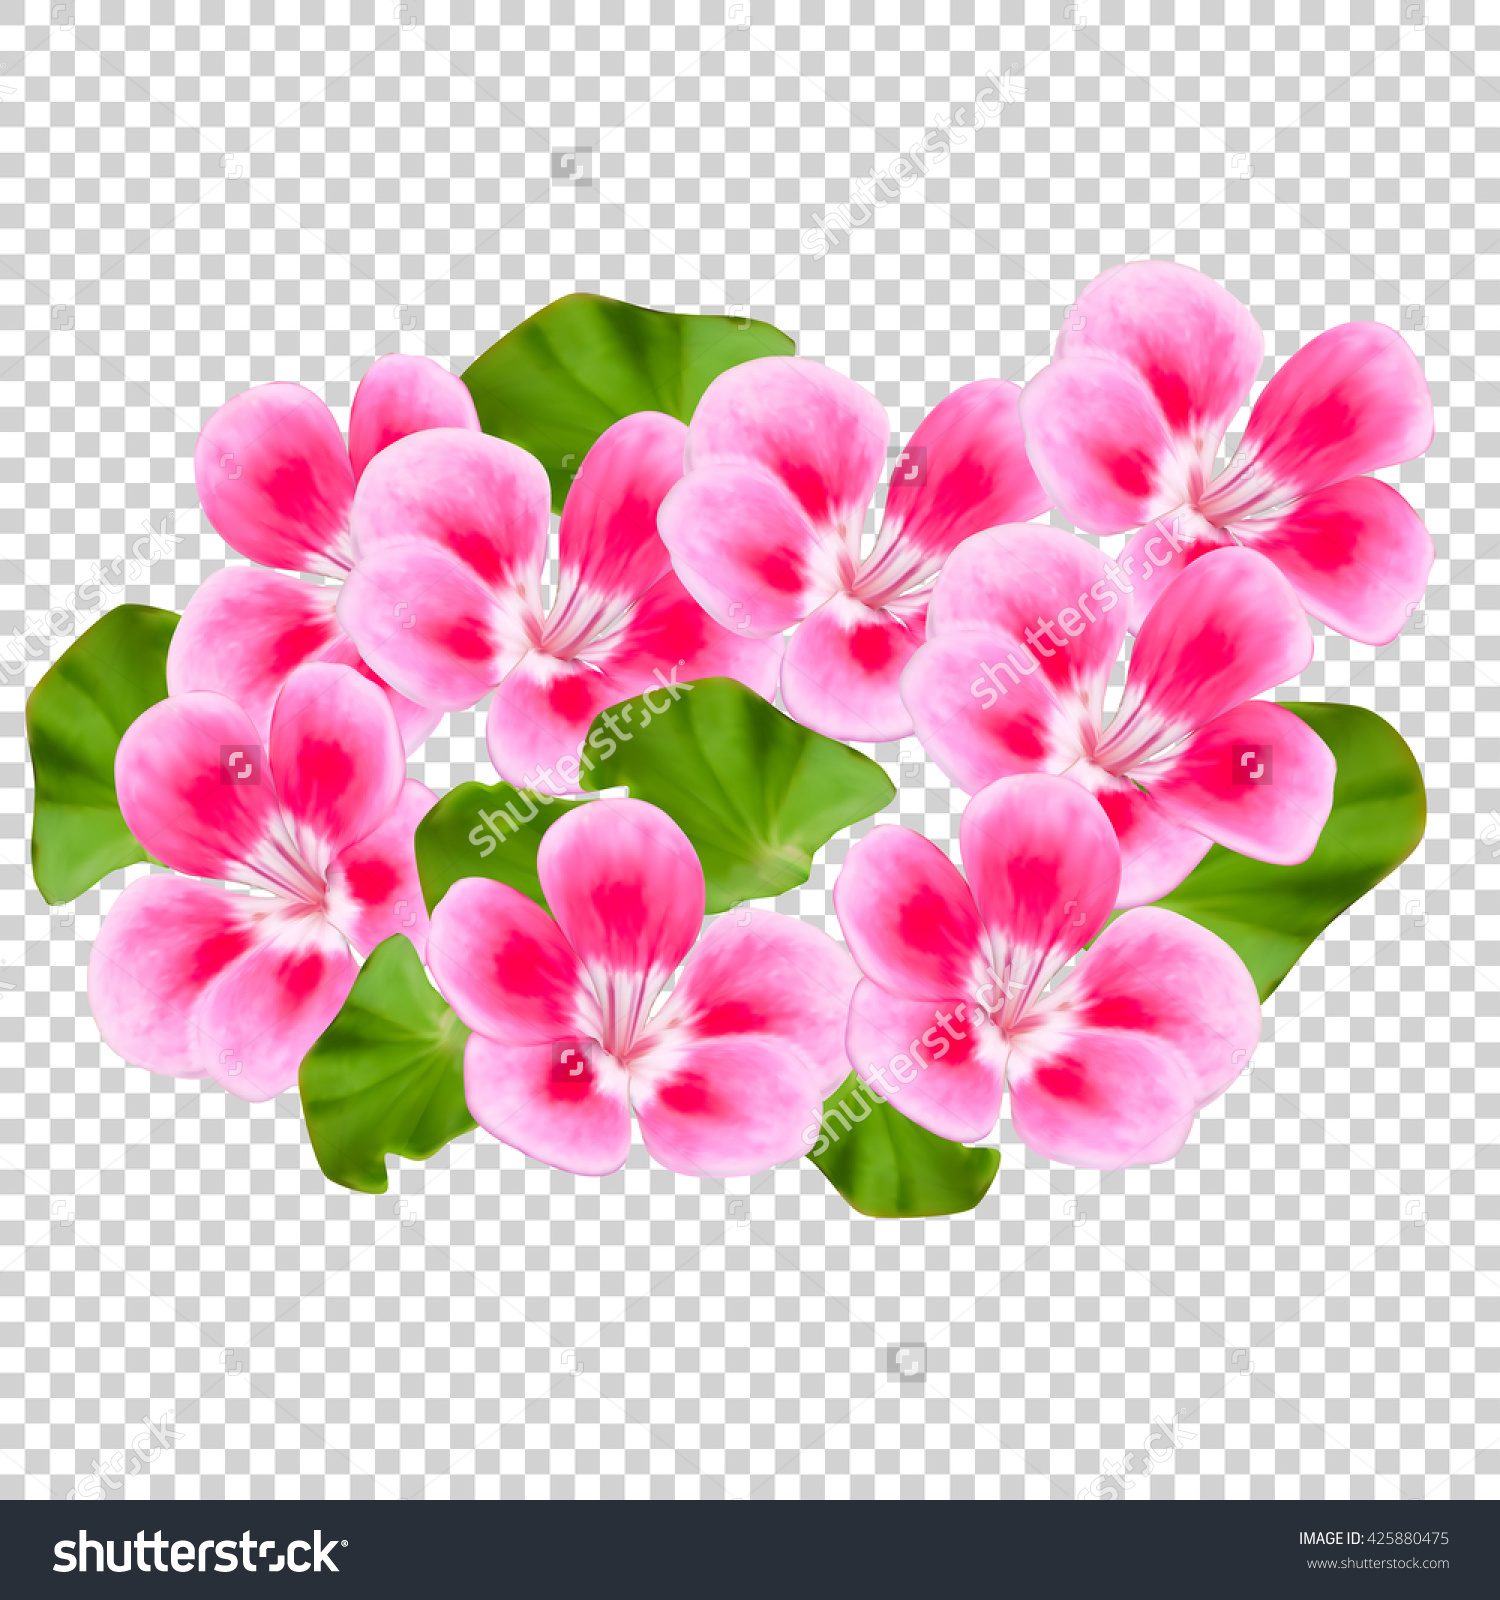 Flowers Without Background Clipground